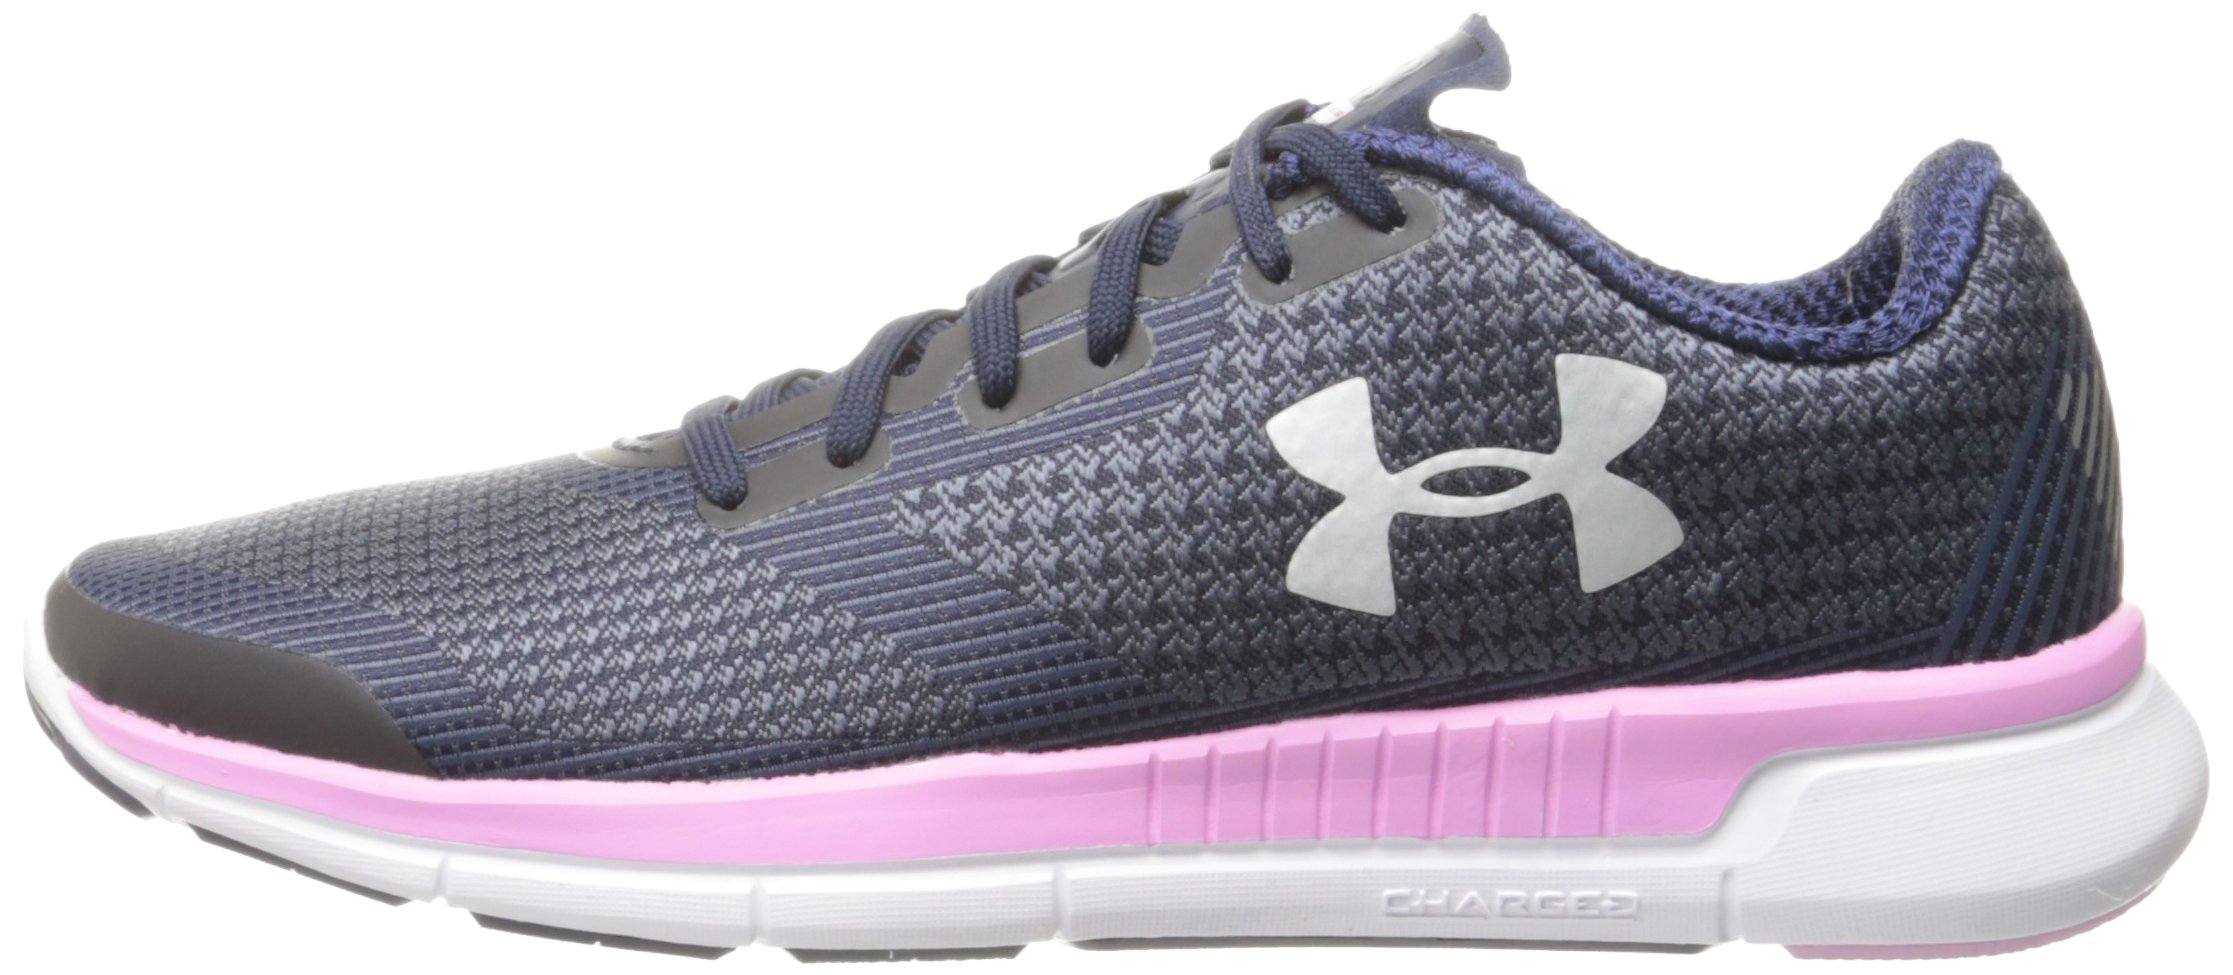 Under Armour Women's Charged Lightning Economical, stylish, and eye-catching shoes